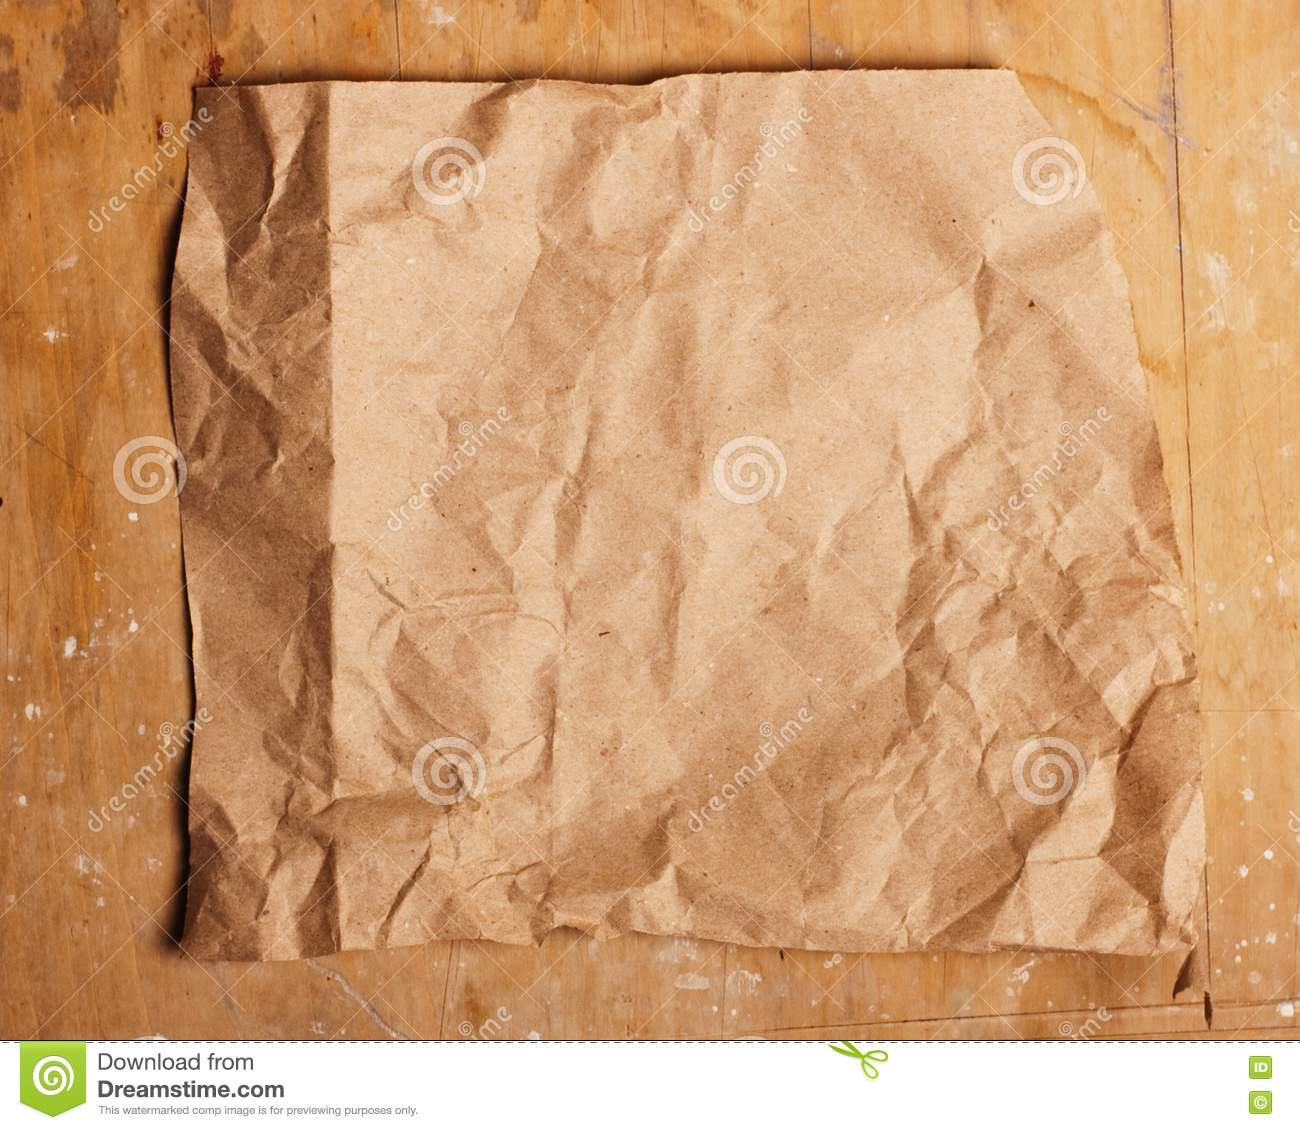 Ripped Pieces Of Paper Royalty Free Stock Images - Image: 17987699